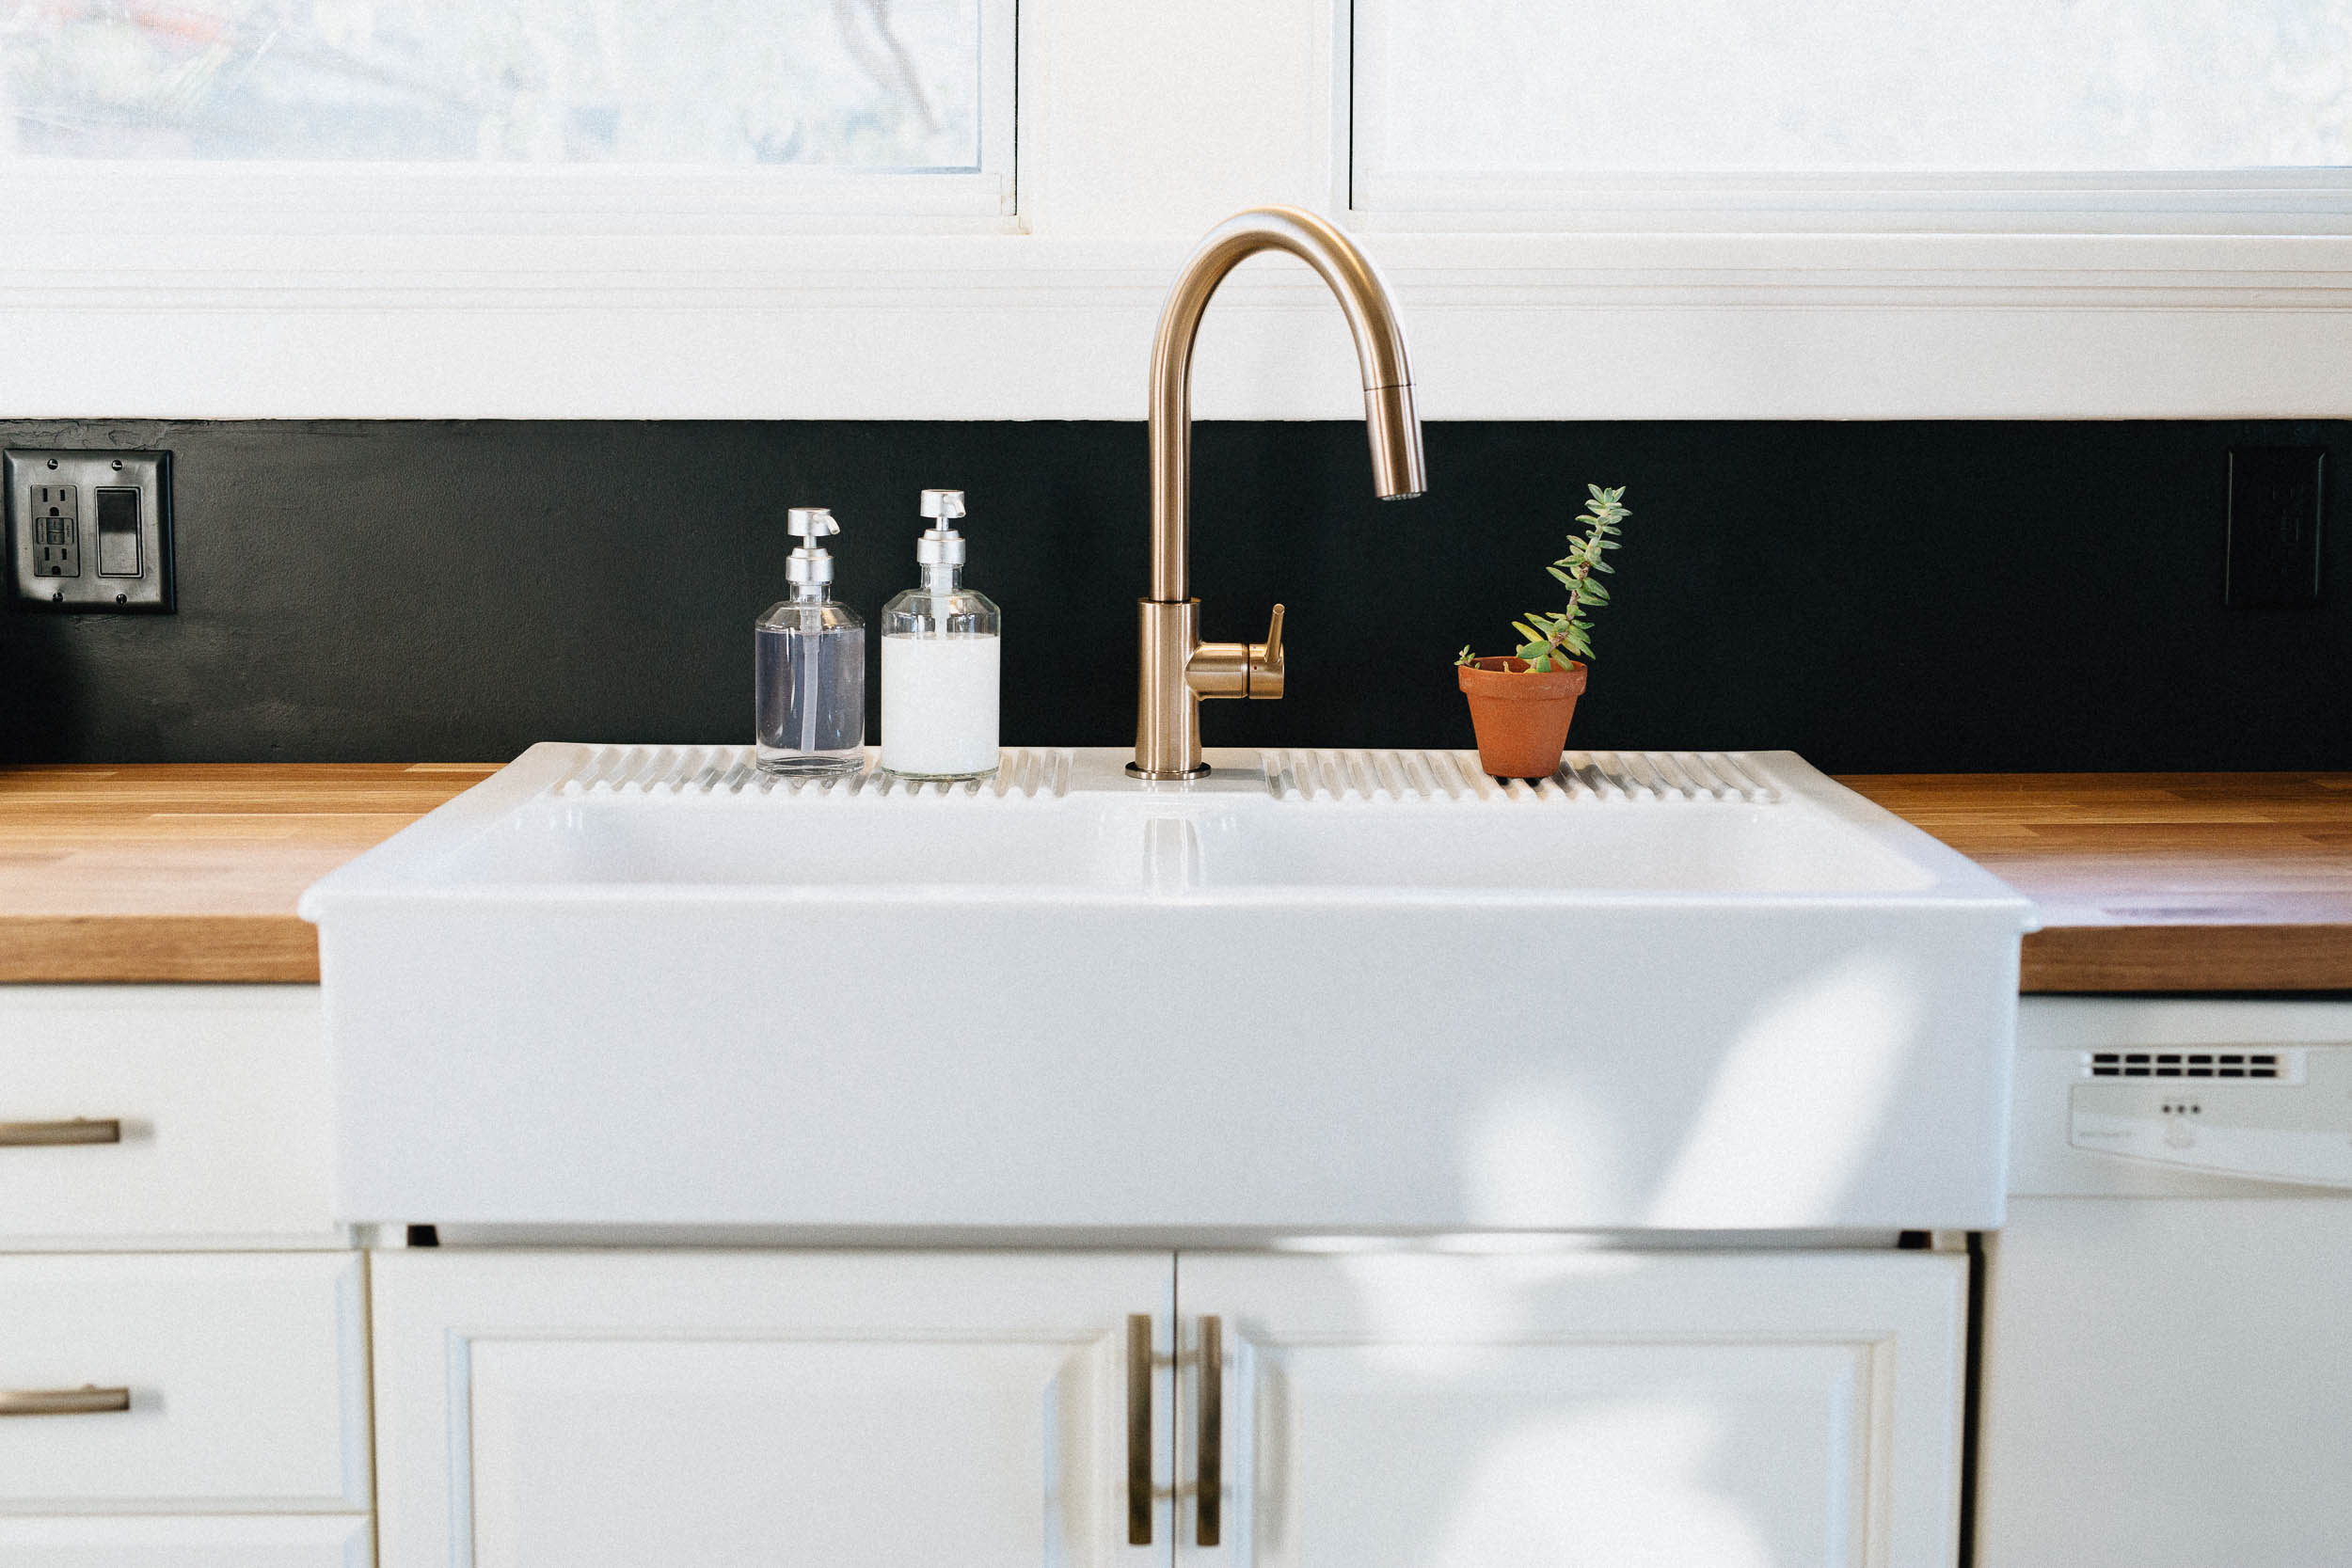 Modern Black and White Kitchen - Farmhouse Sink with Gold Faucet